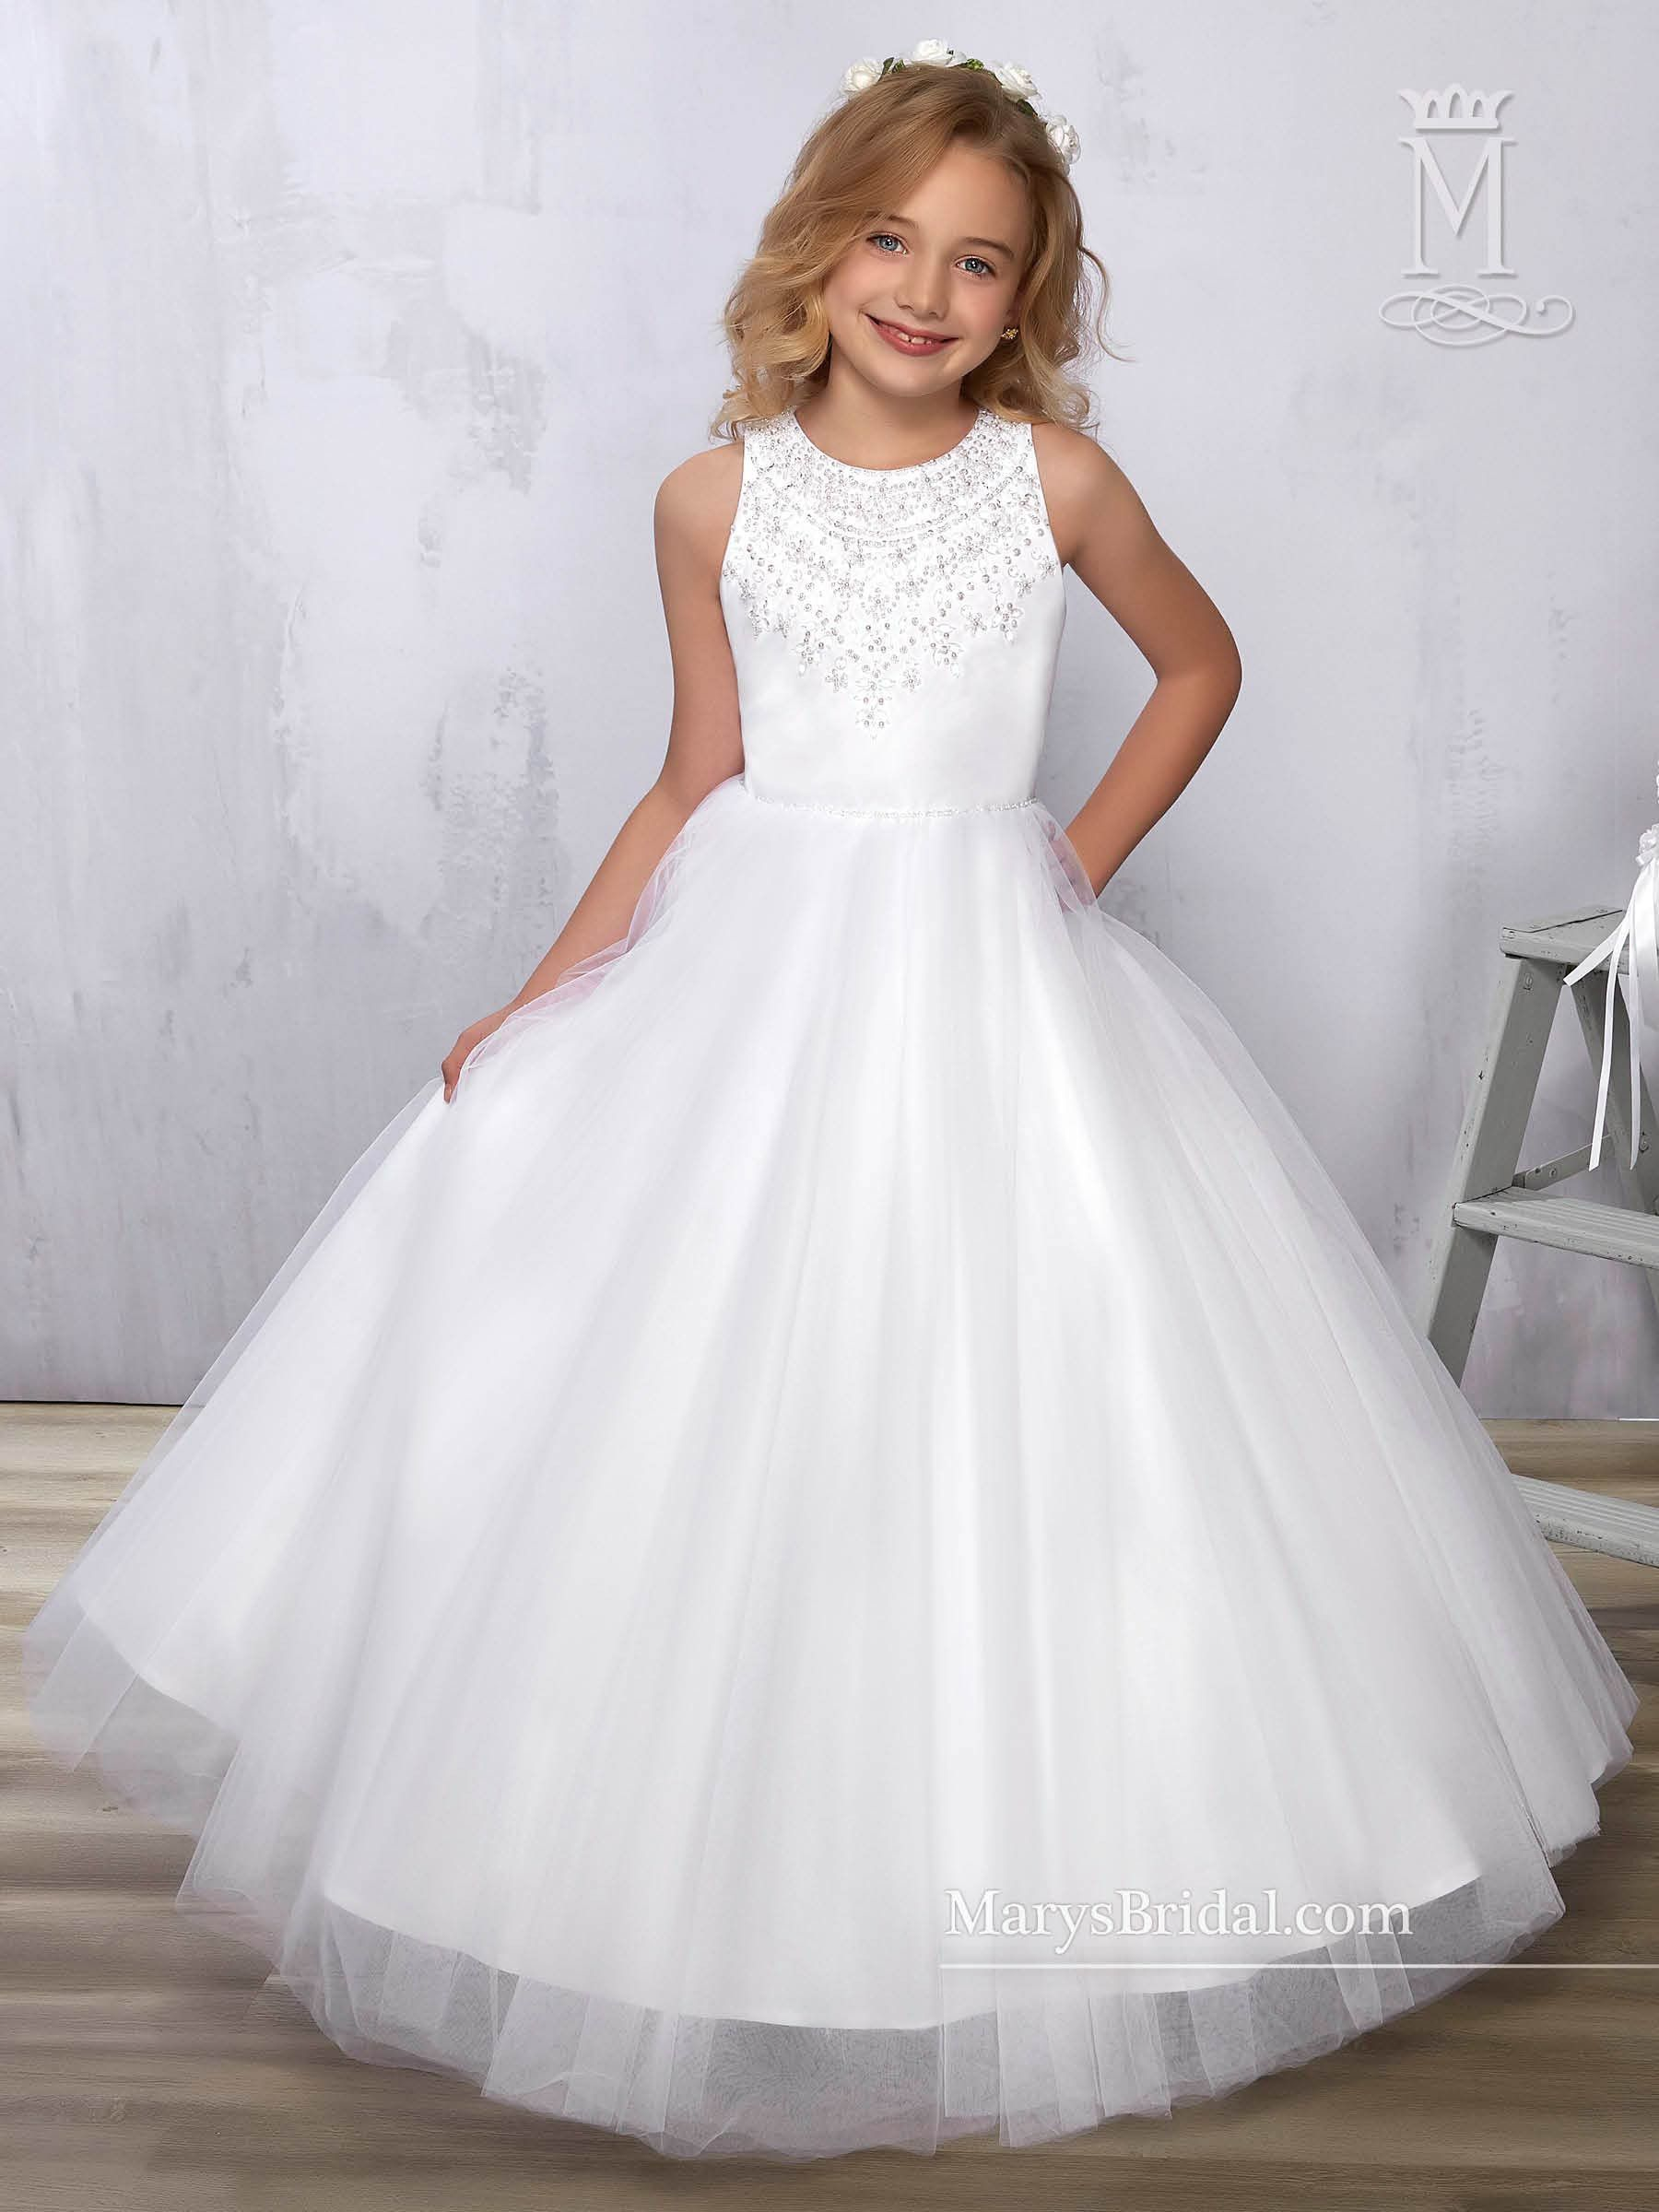 1dad571f1 Beaded Tulle Flower Girl Dress by Mary s Bridal Cupids F571